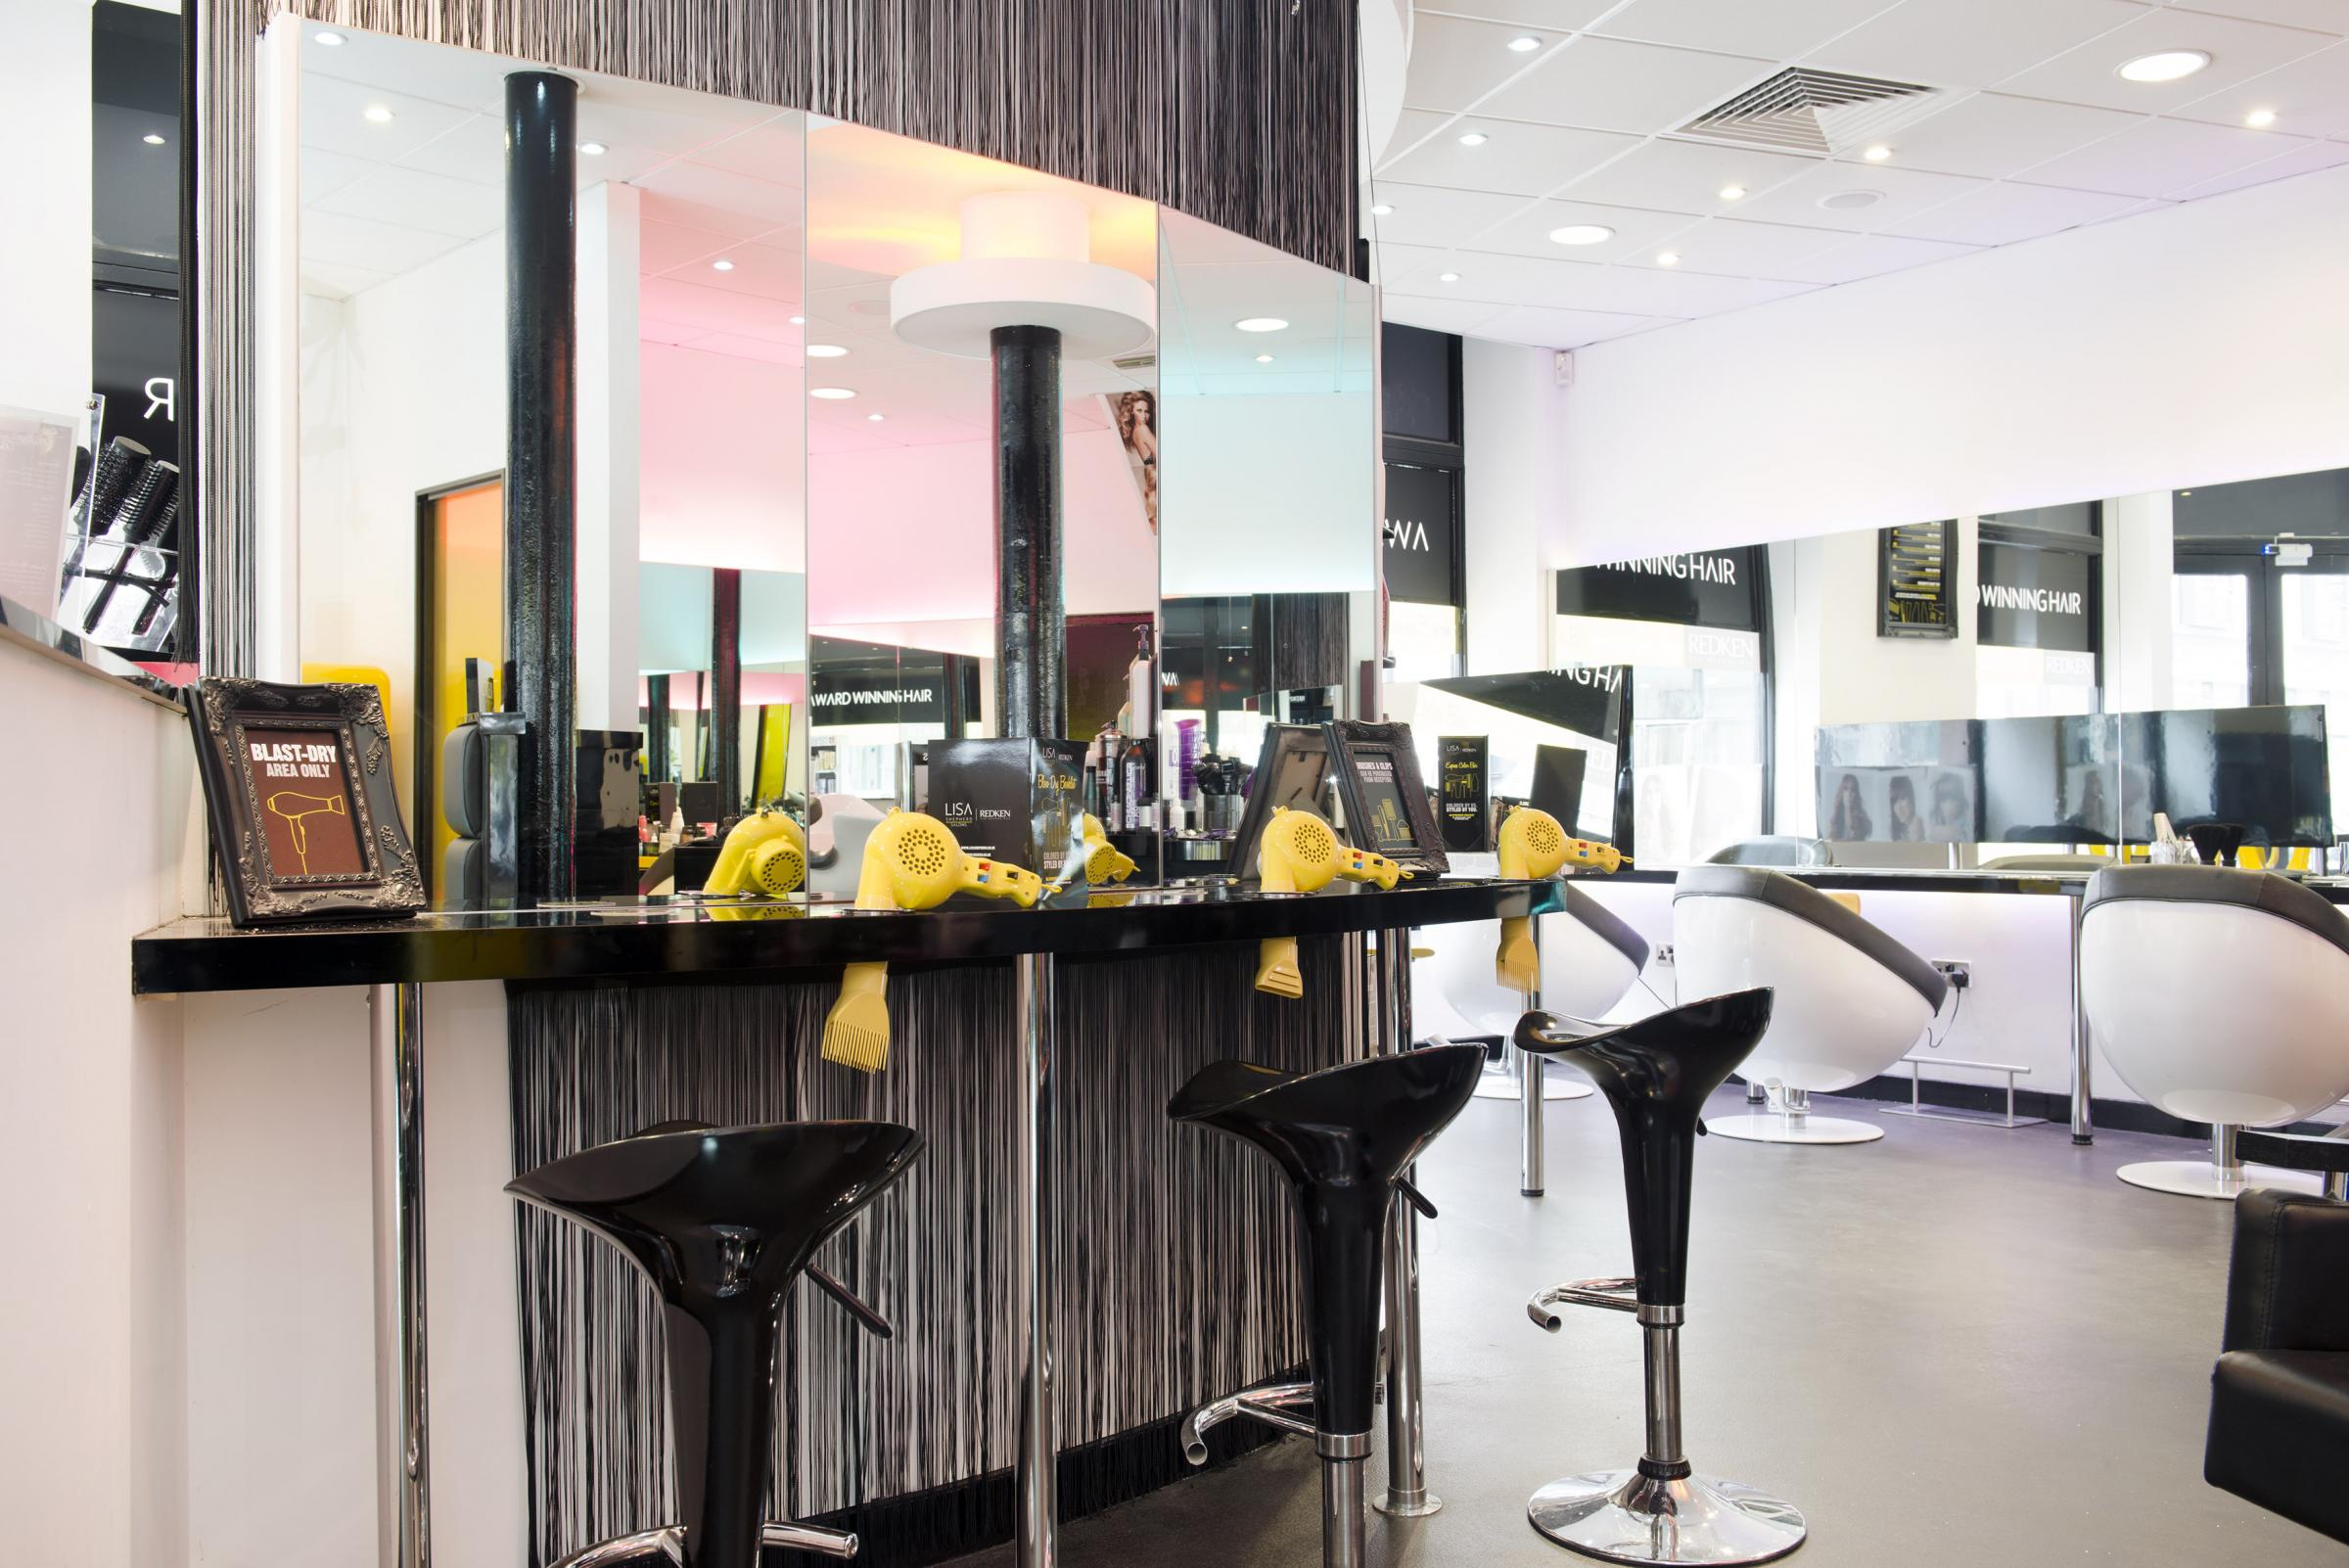 AWARD WINNER: The Color Bar service at award winning Lisa Shepherd salon in Kidderminster.